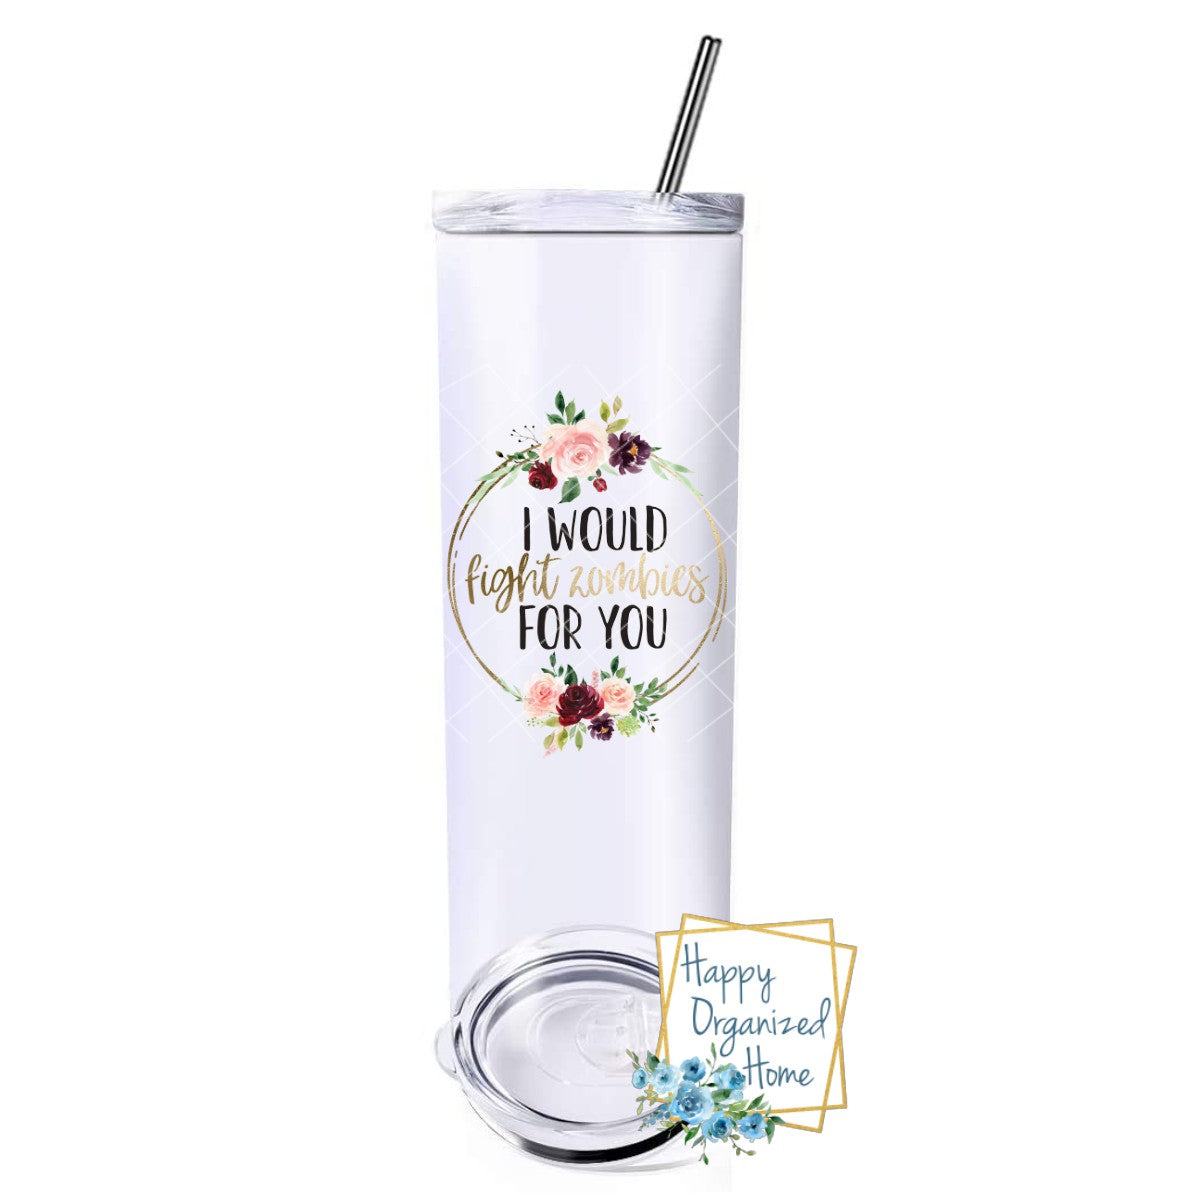 I would fight Zombies for you - Insulated tumbler with metal straw